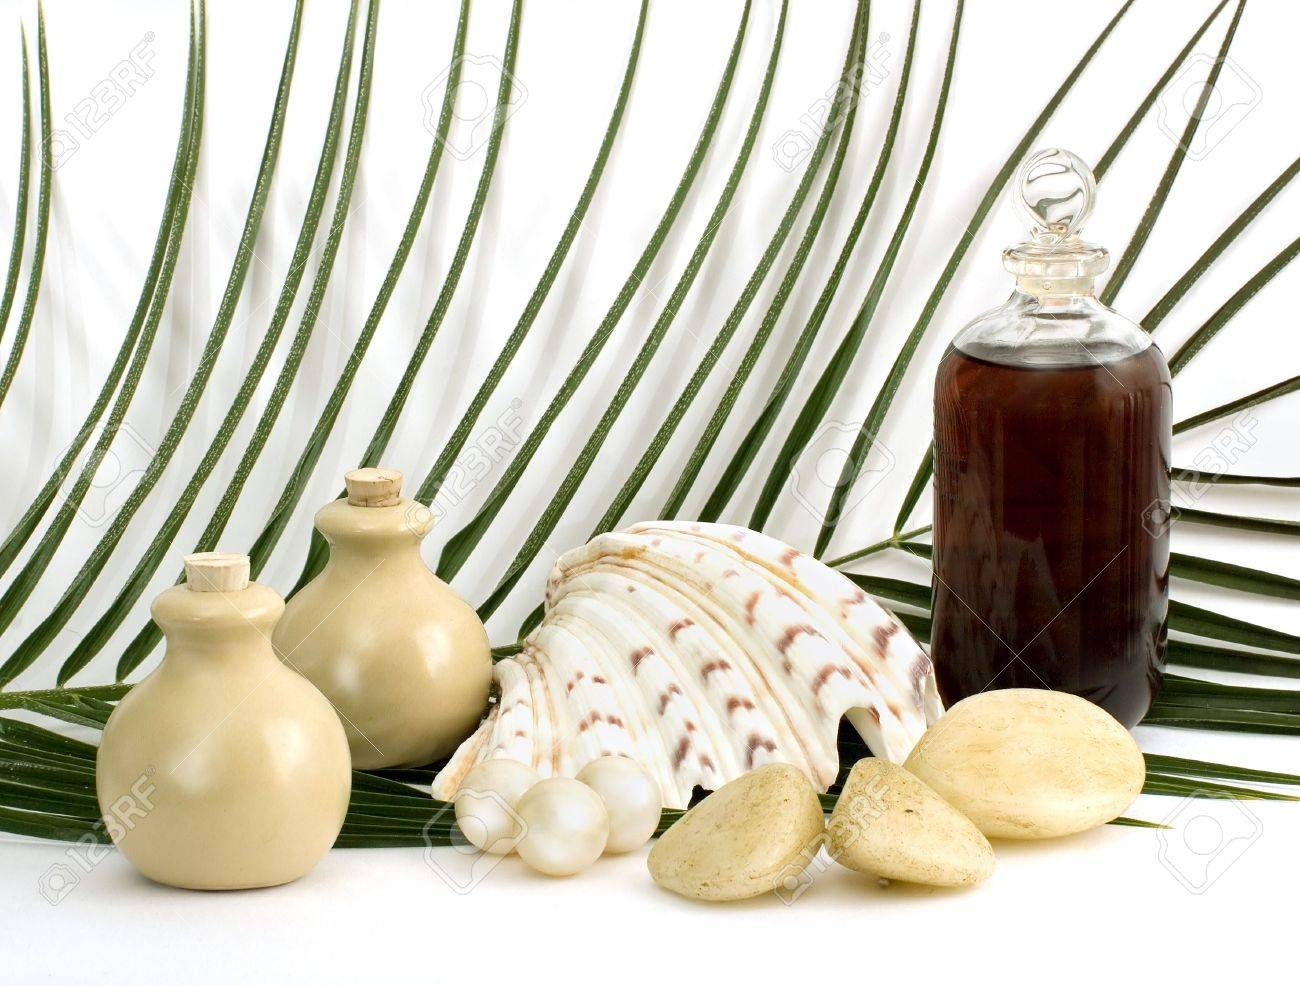 Objects for massage and aromatherapy on white background Stock Photo - 2414513